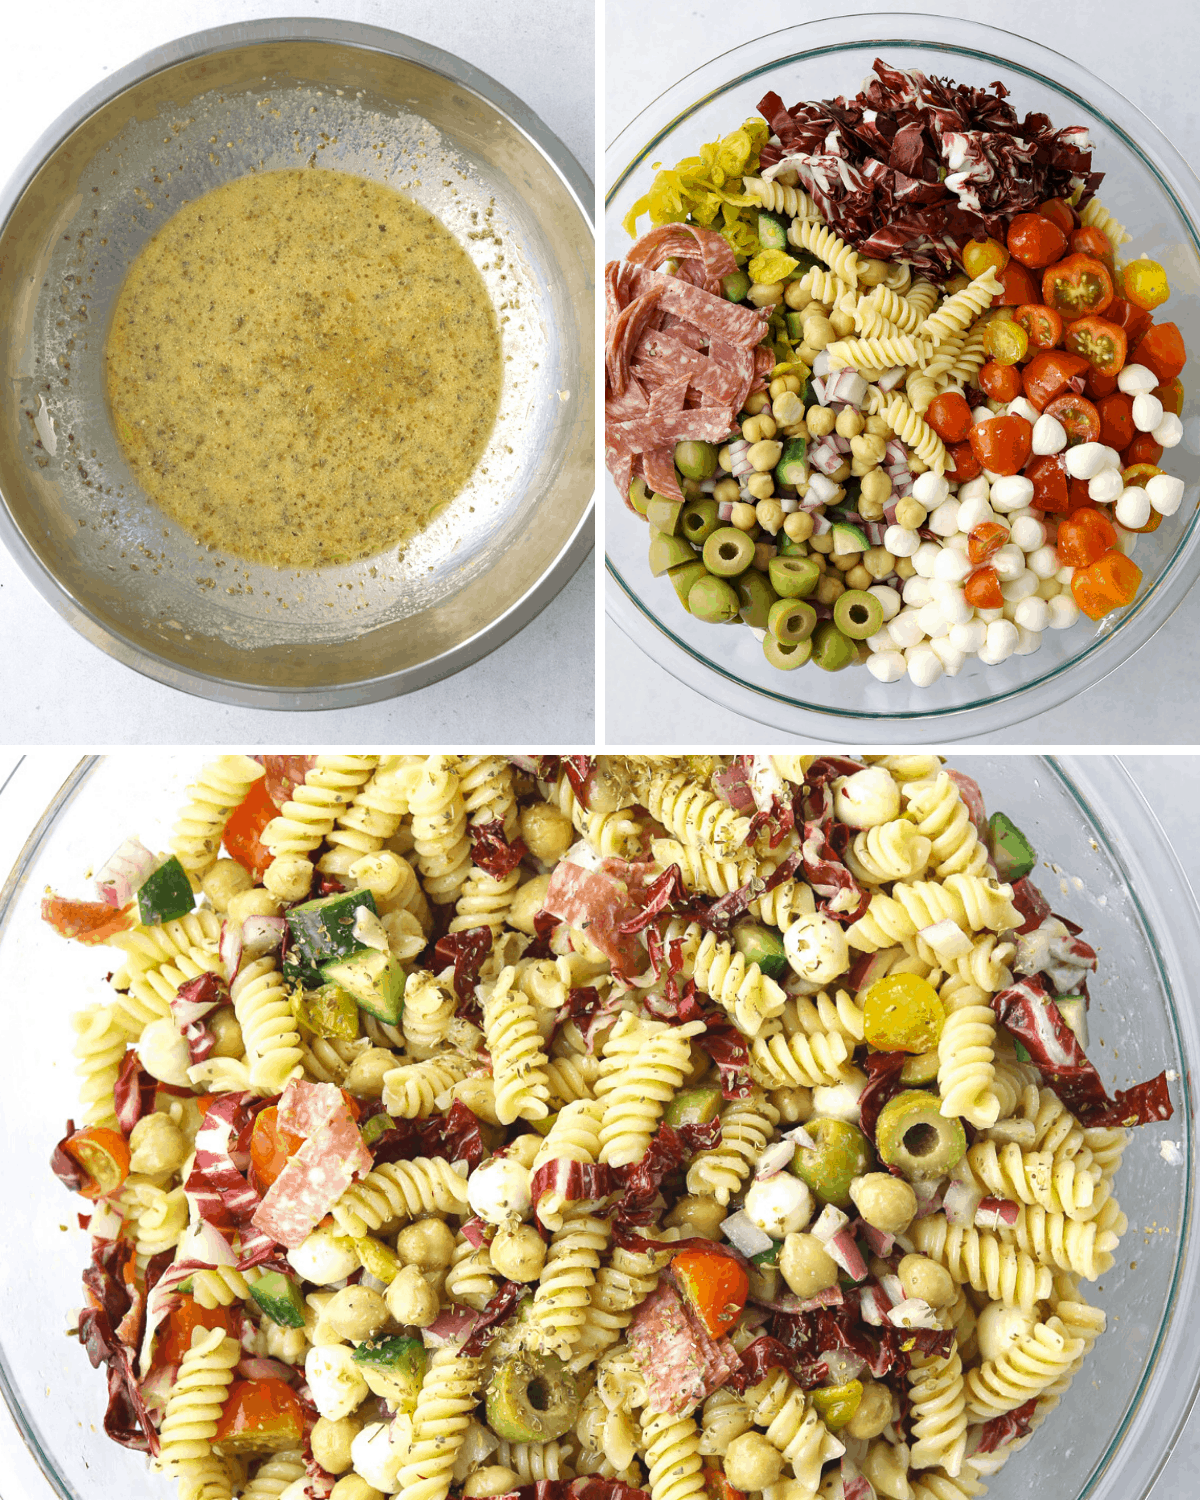 a metal mixing bowl with vinaigrette, a glass mixing bowl with Italian Pasta Salad ingredients and another bowl with Italian Pasta Salad tossed with dressing